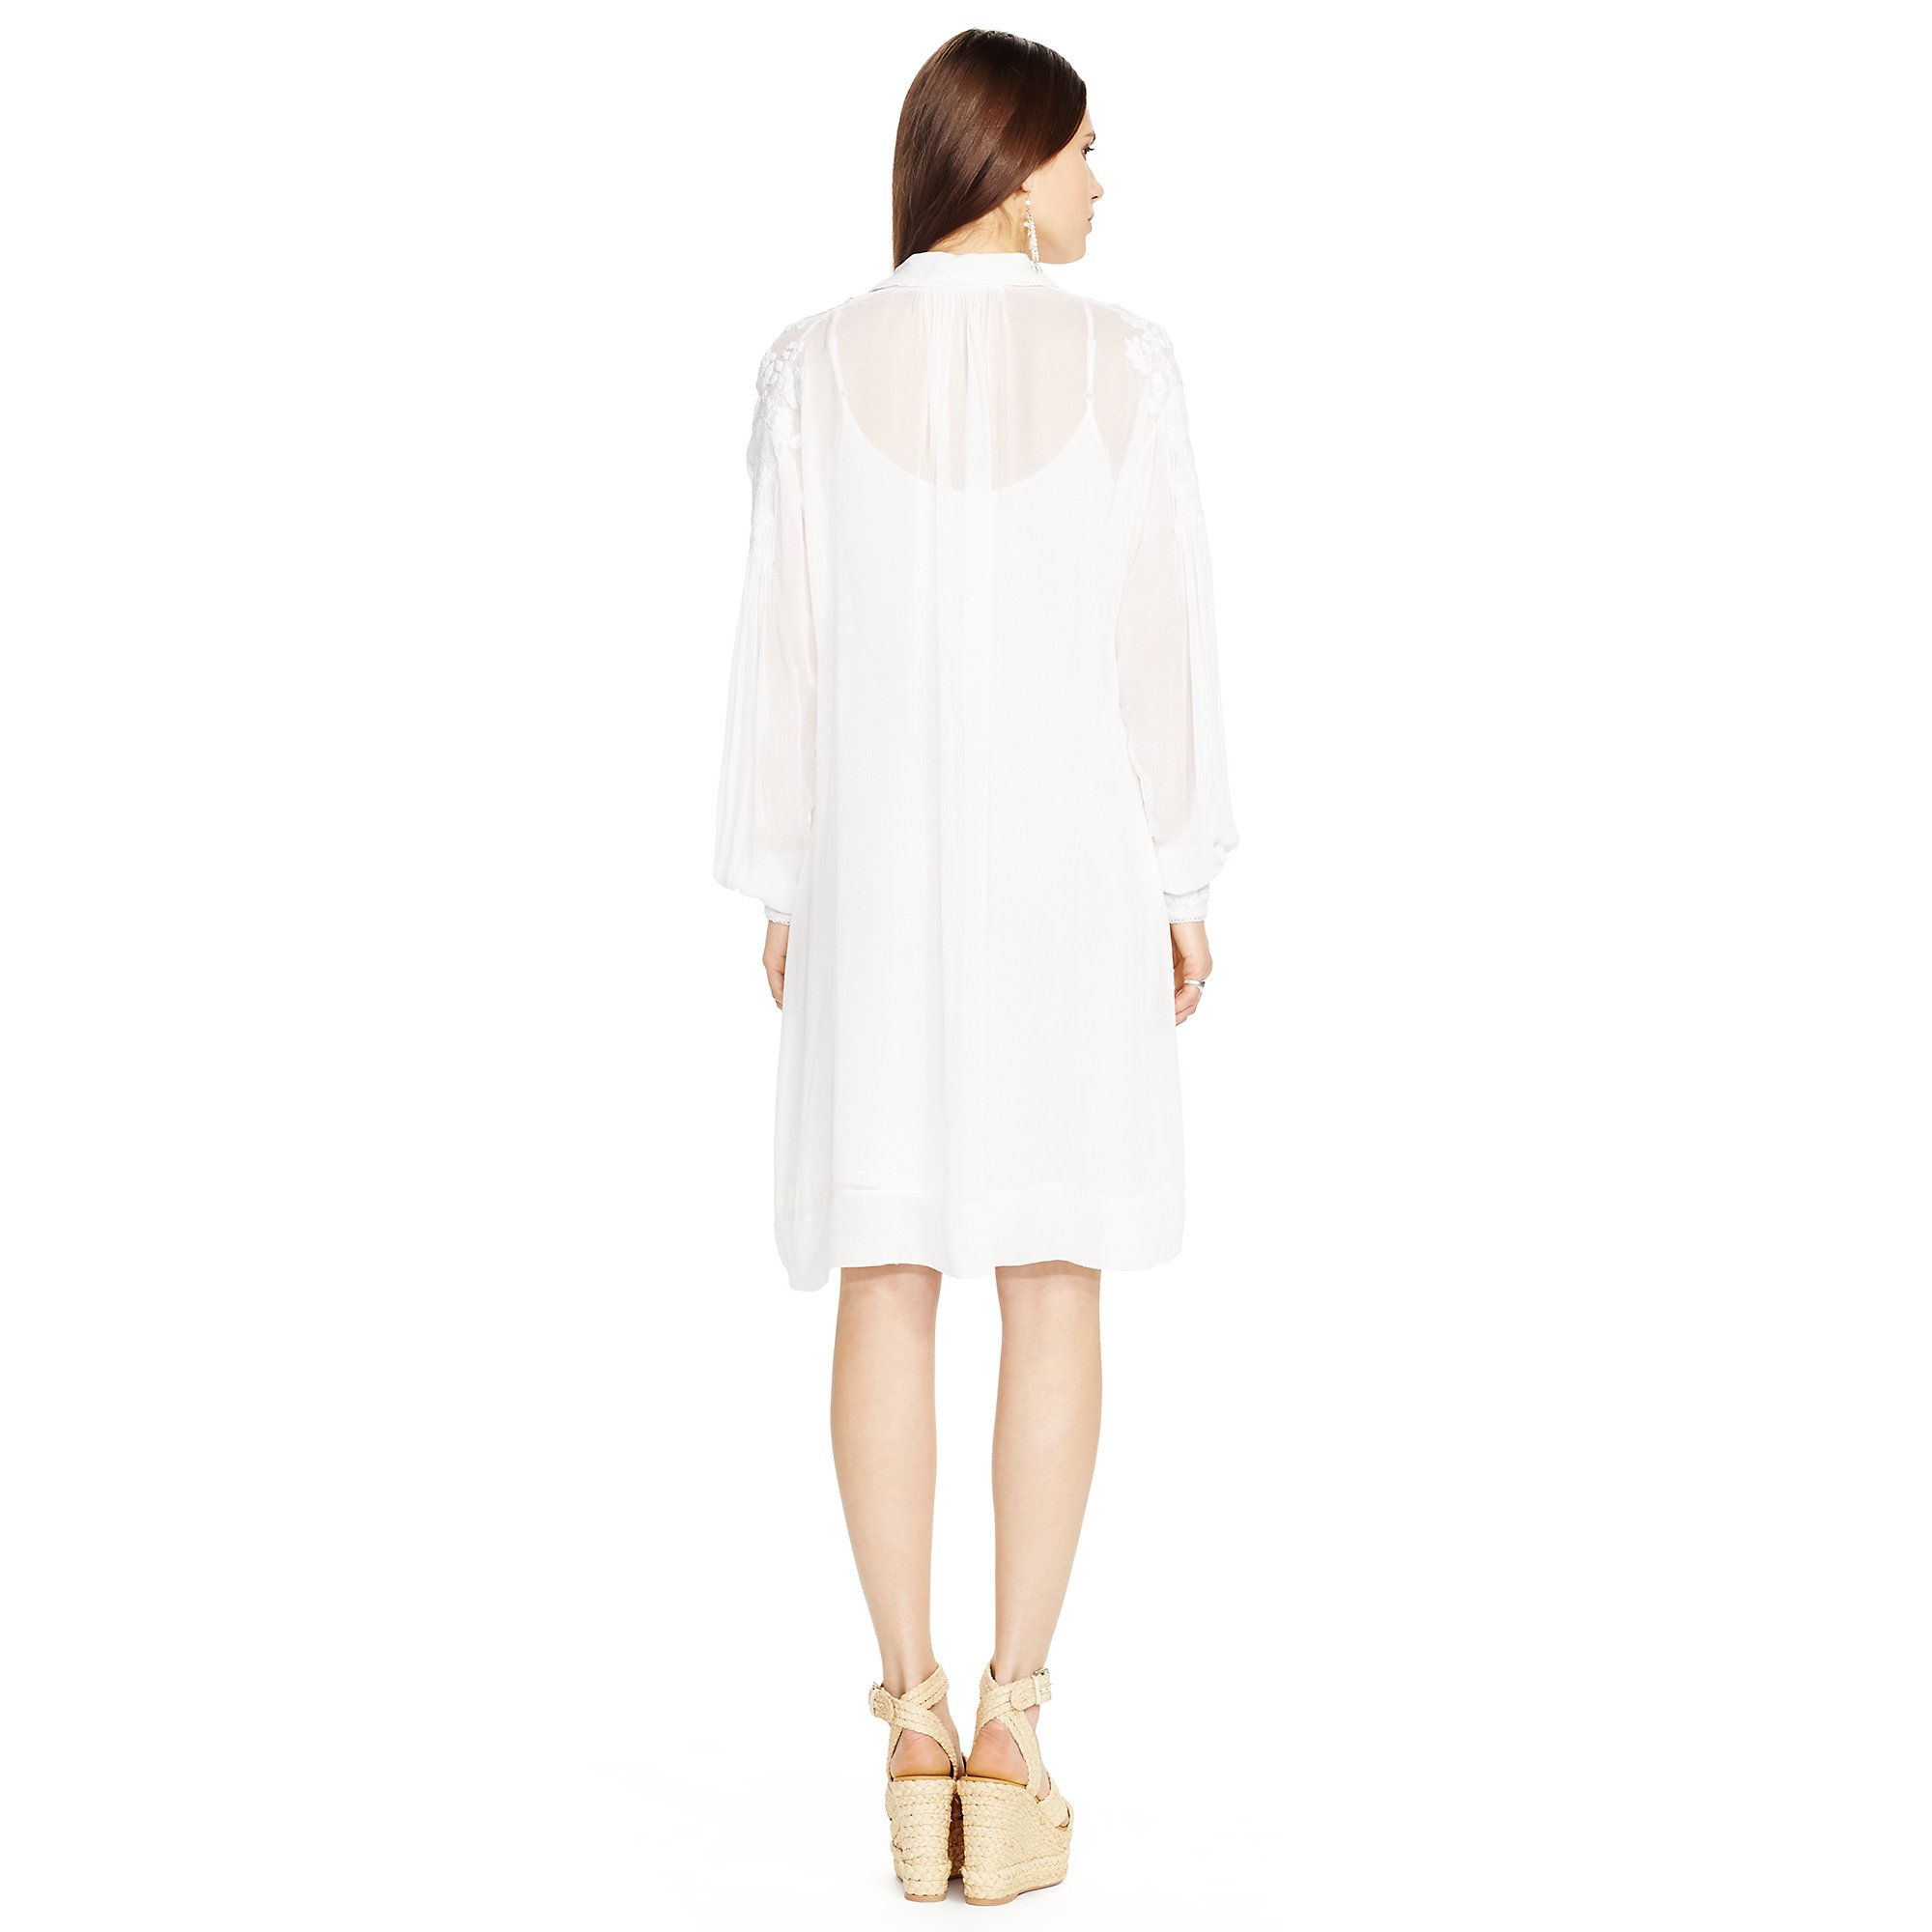 Polo ralph lauren Embroidered Long-sleeve Dress in White | Lyst